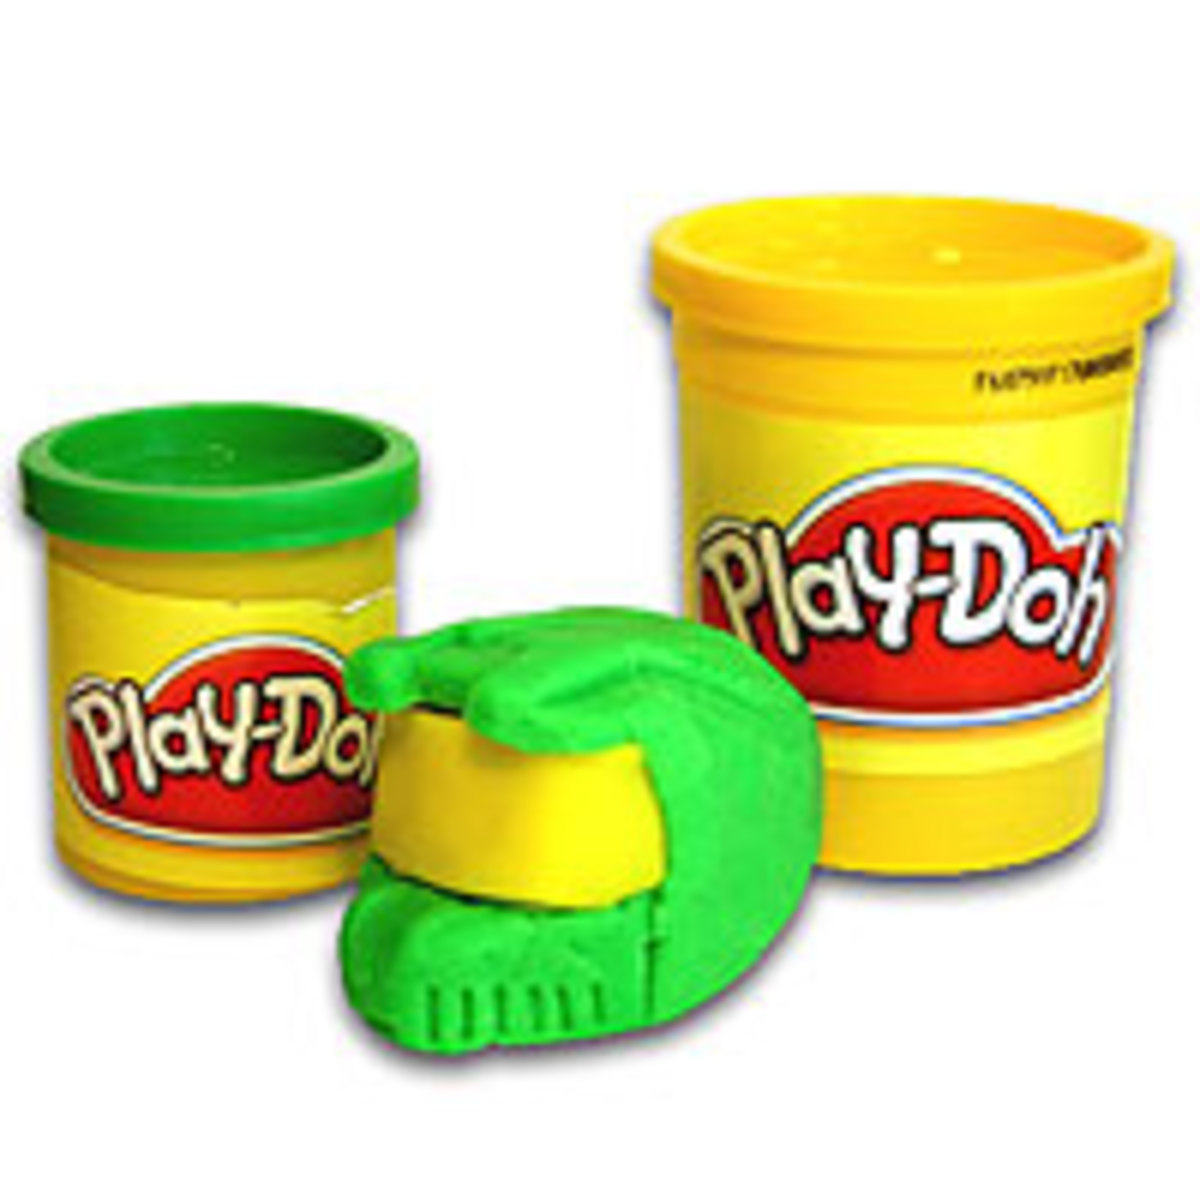 Cups of Play-doh with form press